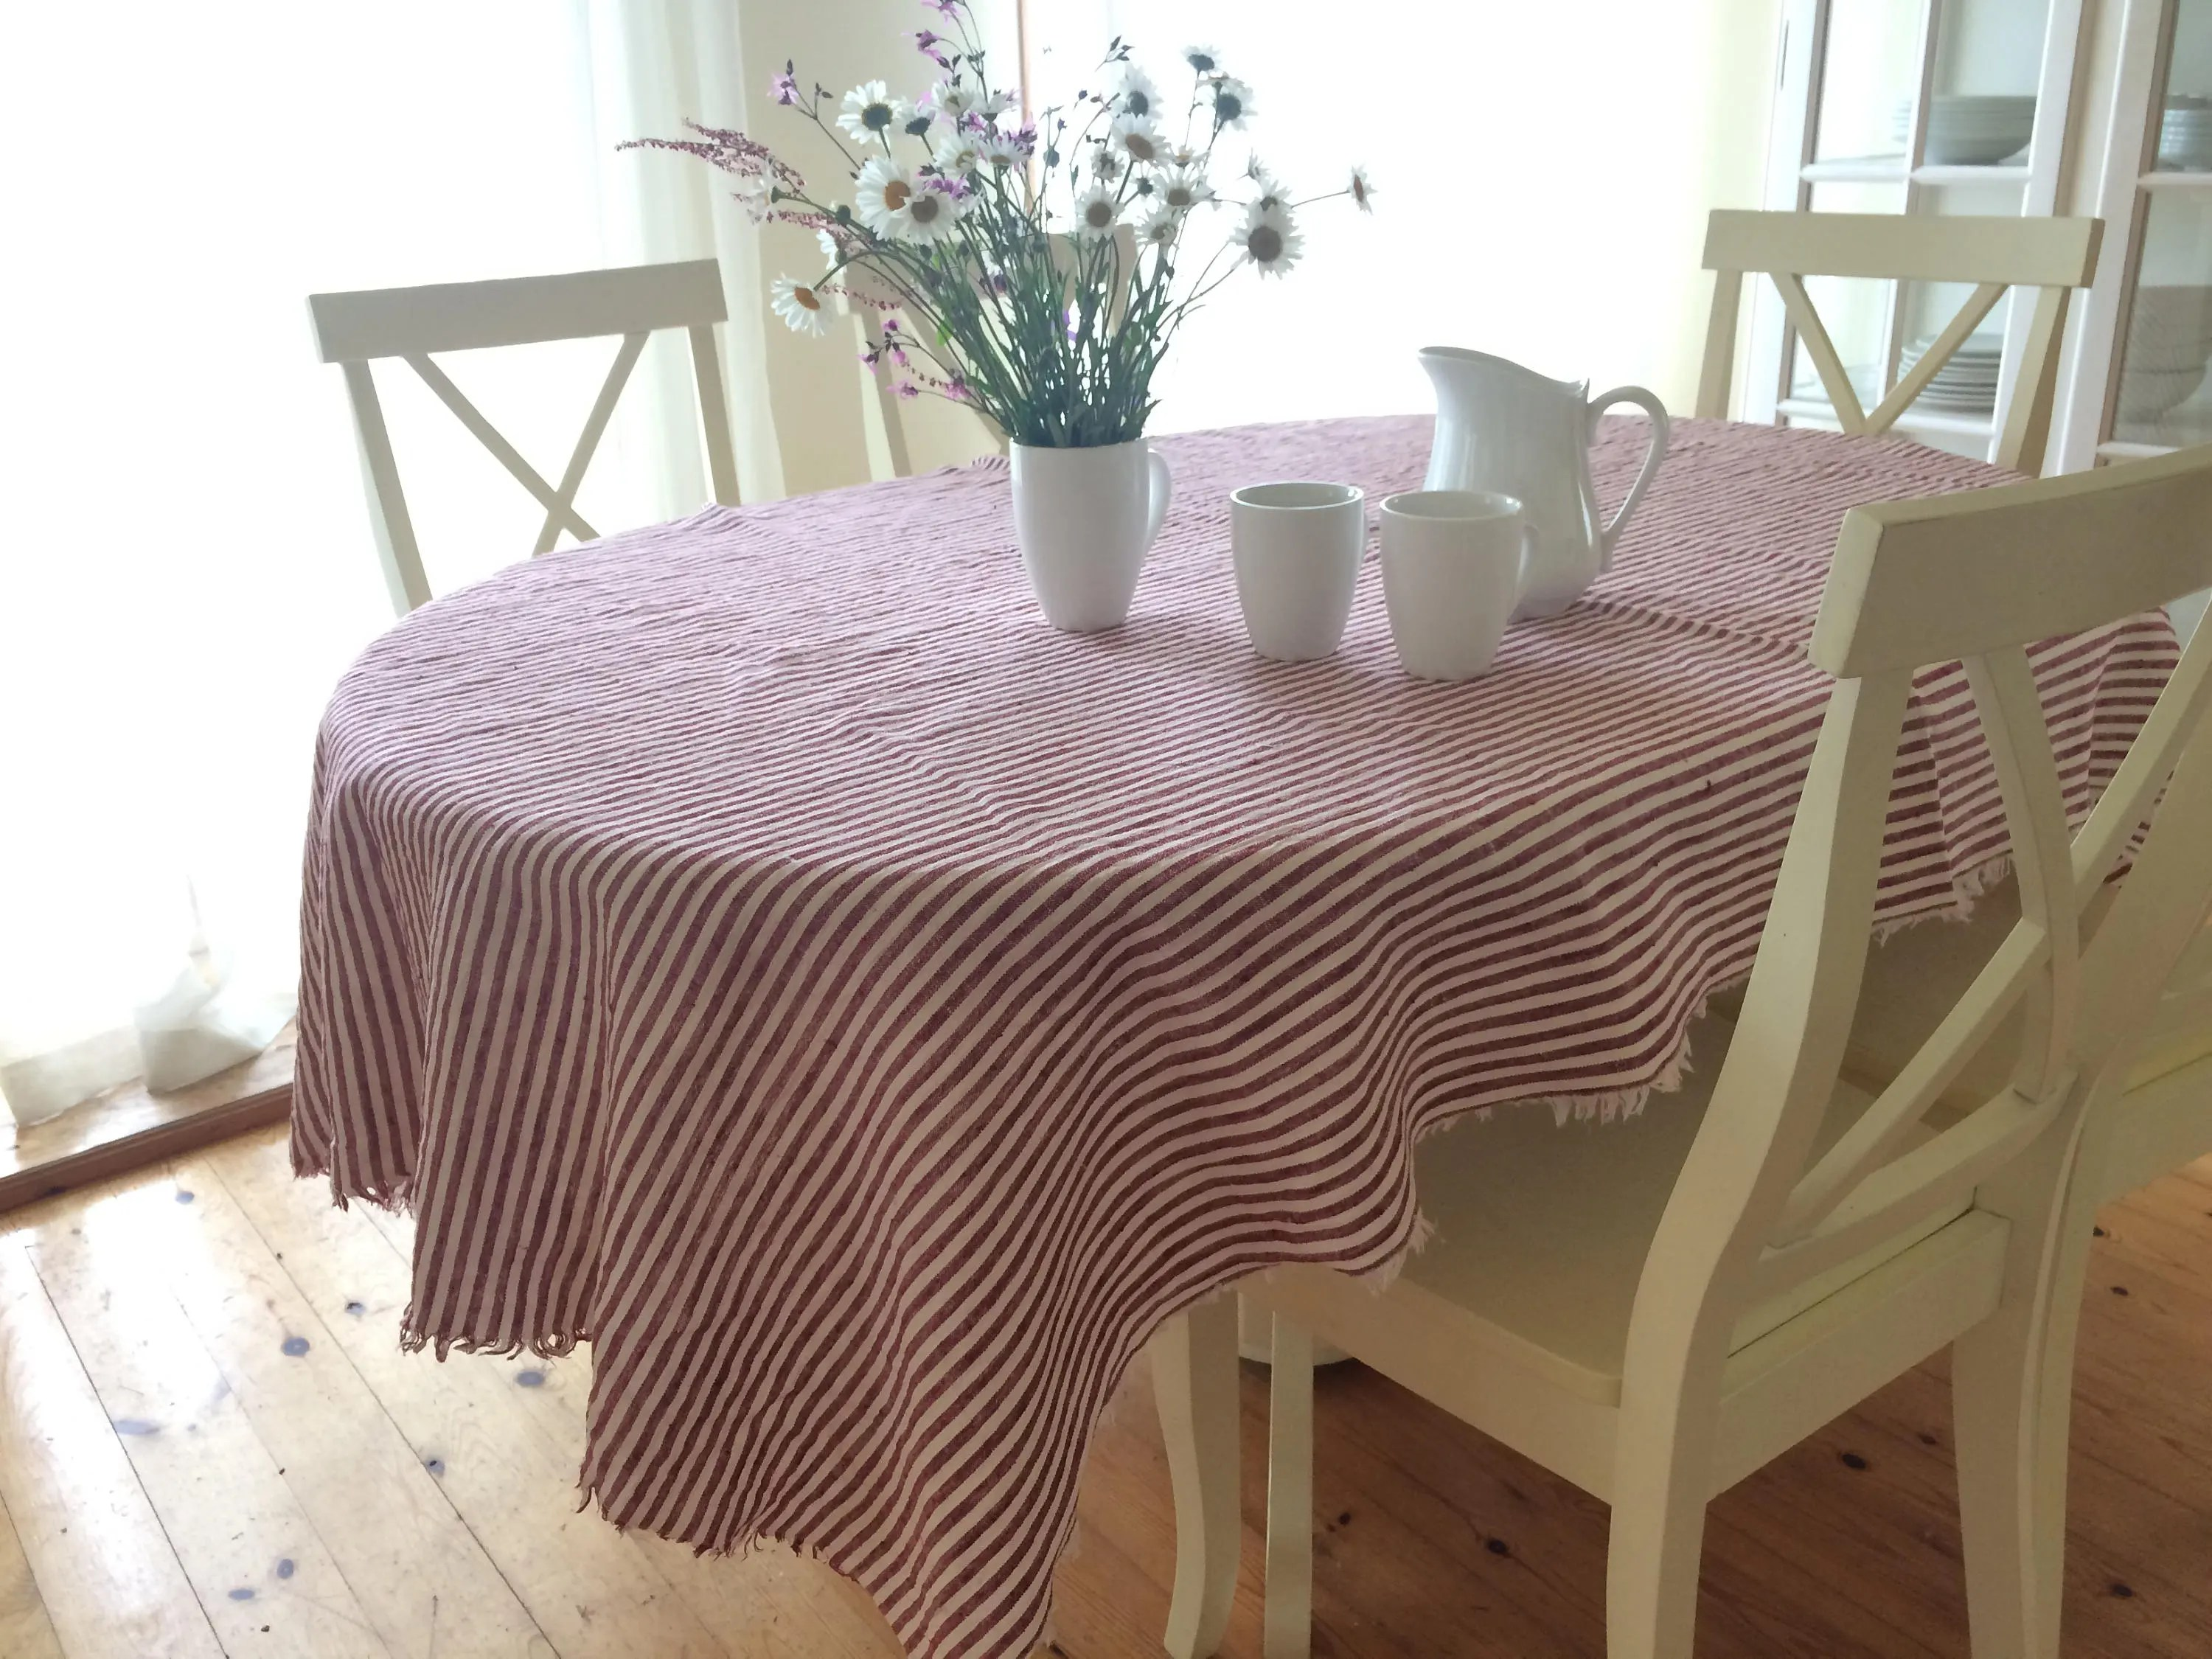 Christmas Tablecloths Australia Red And White Striped Tablecloth Christmas Linen Tablecloth Red